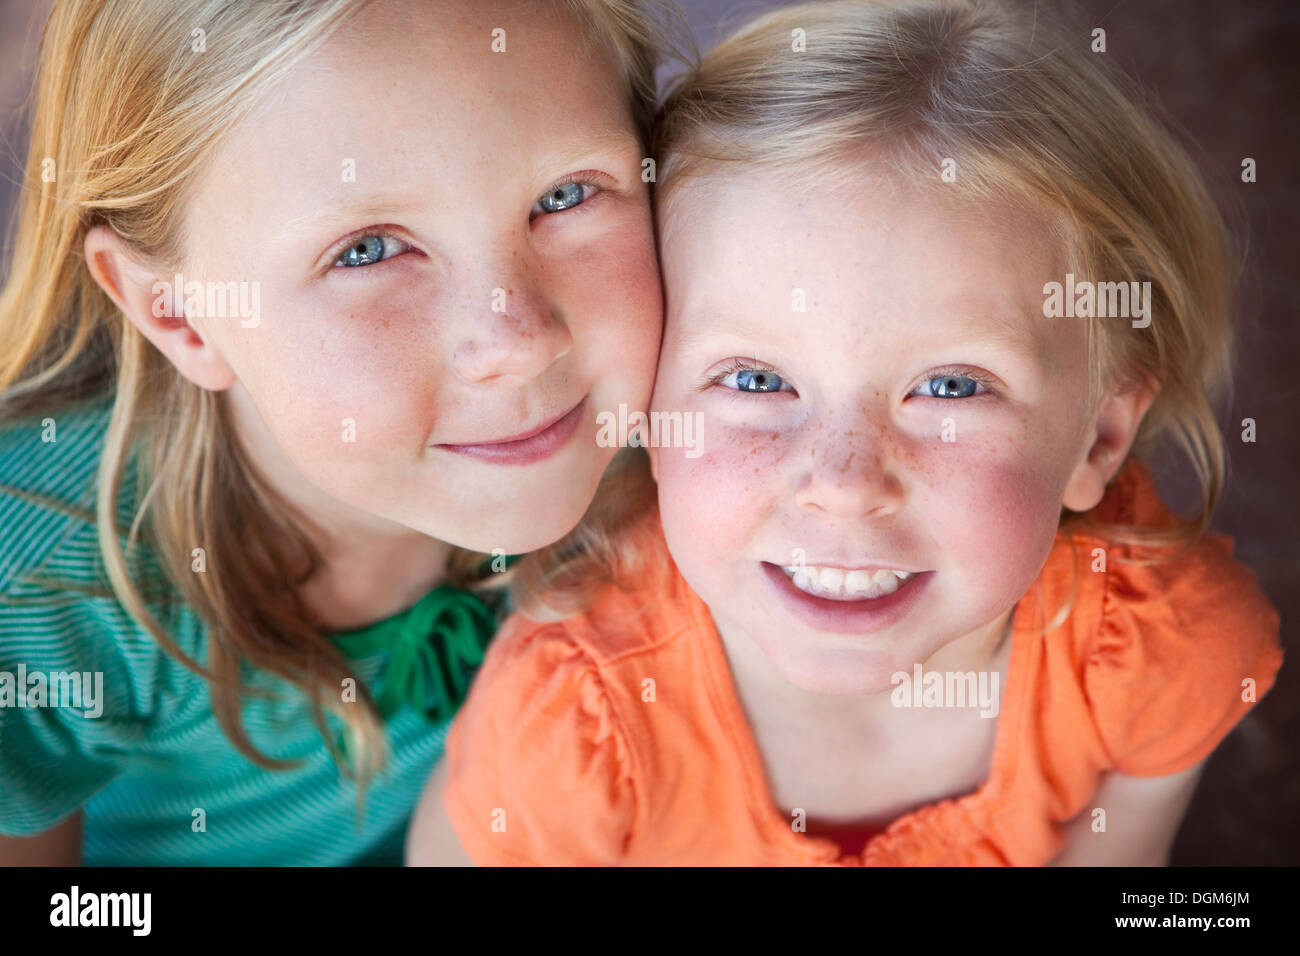 A Portrait Of Two Sisters Smiling. Two Young Girls, With